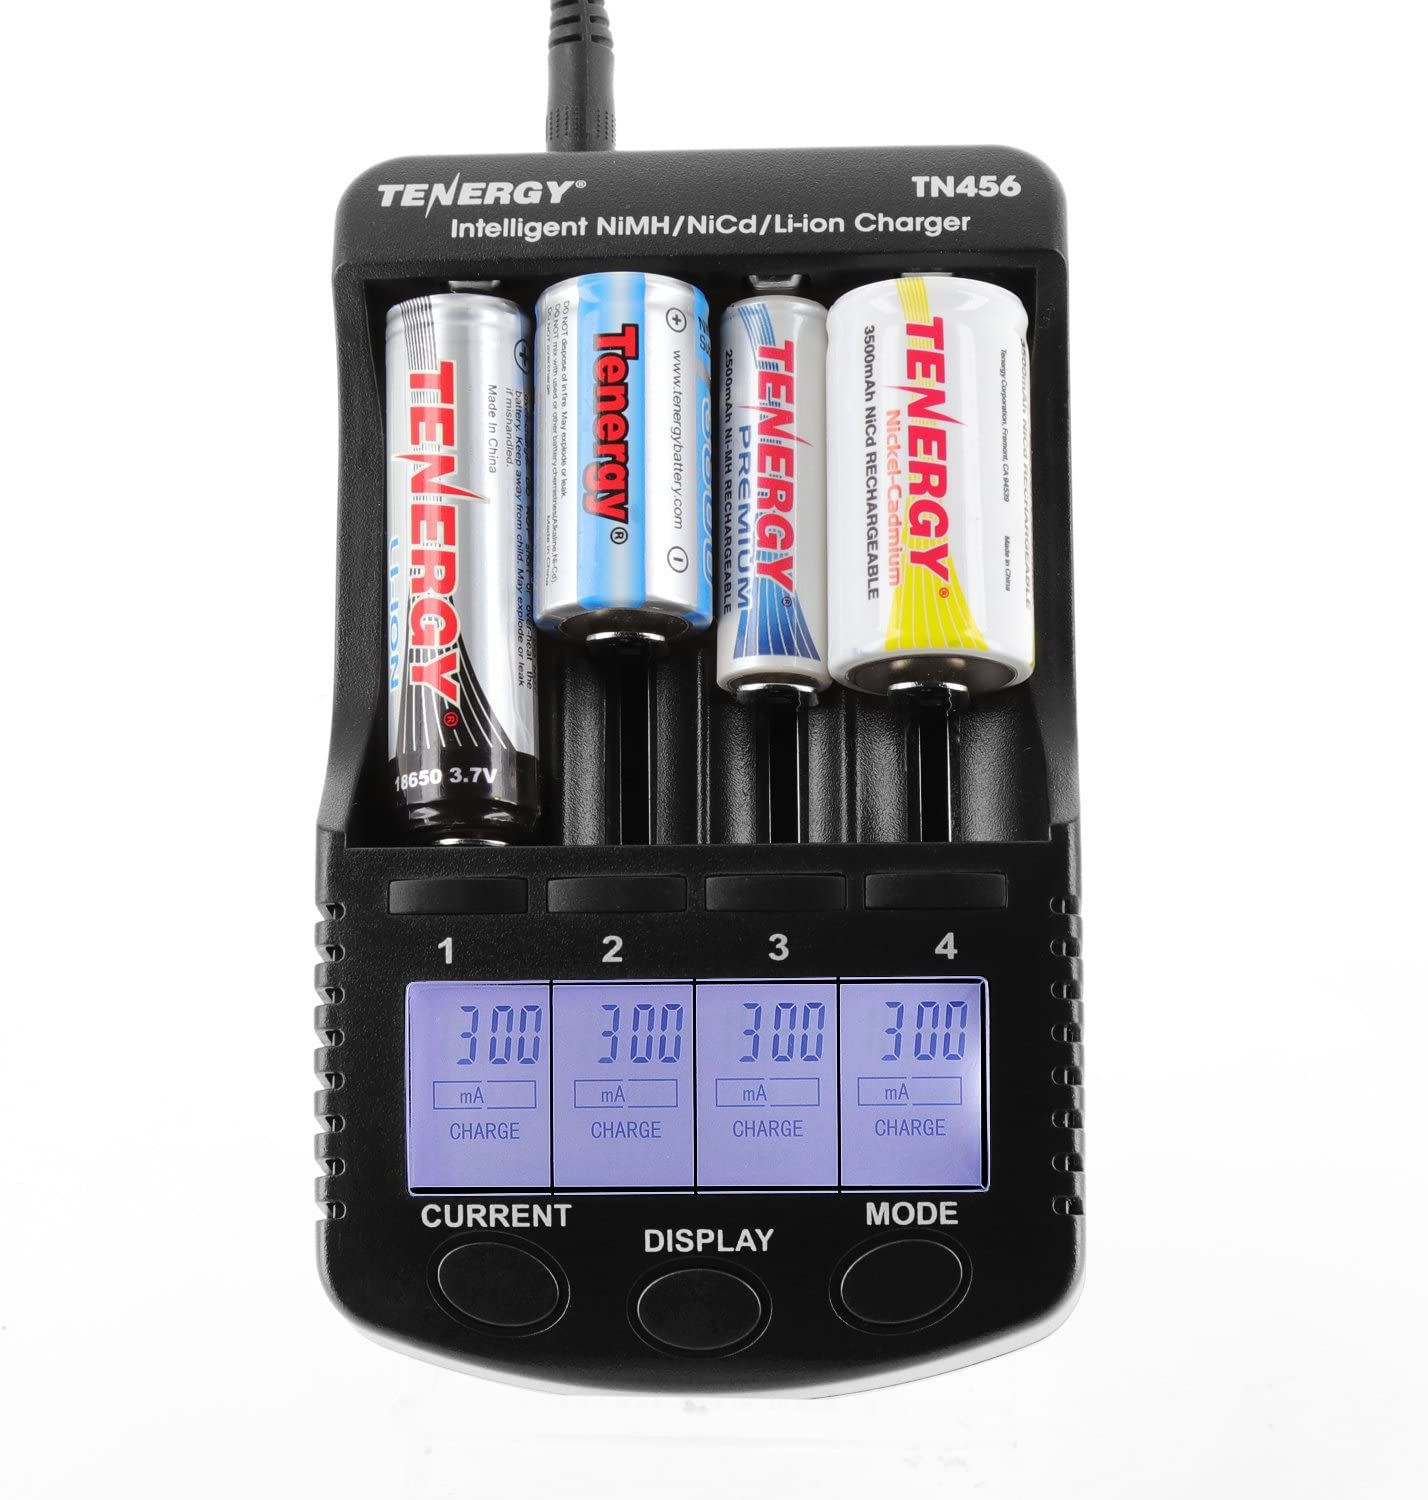 Tenergy TN456 Intelligent Universal Battery Charger with 4 Slots, LCD Display, USB Output, Power Adapter, Rechargeable Battery Charger for Li-ion/NiMH/NiCD Rechargeable Batteries